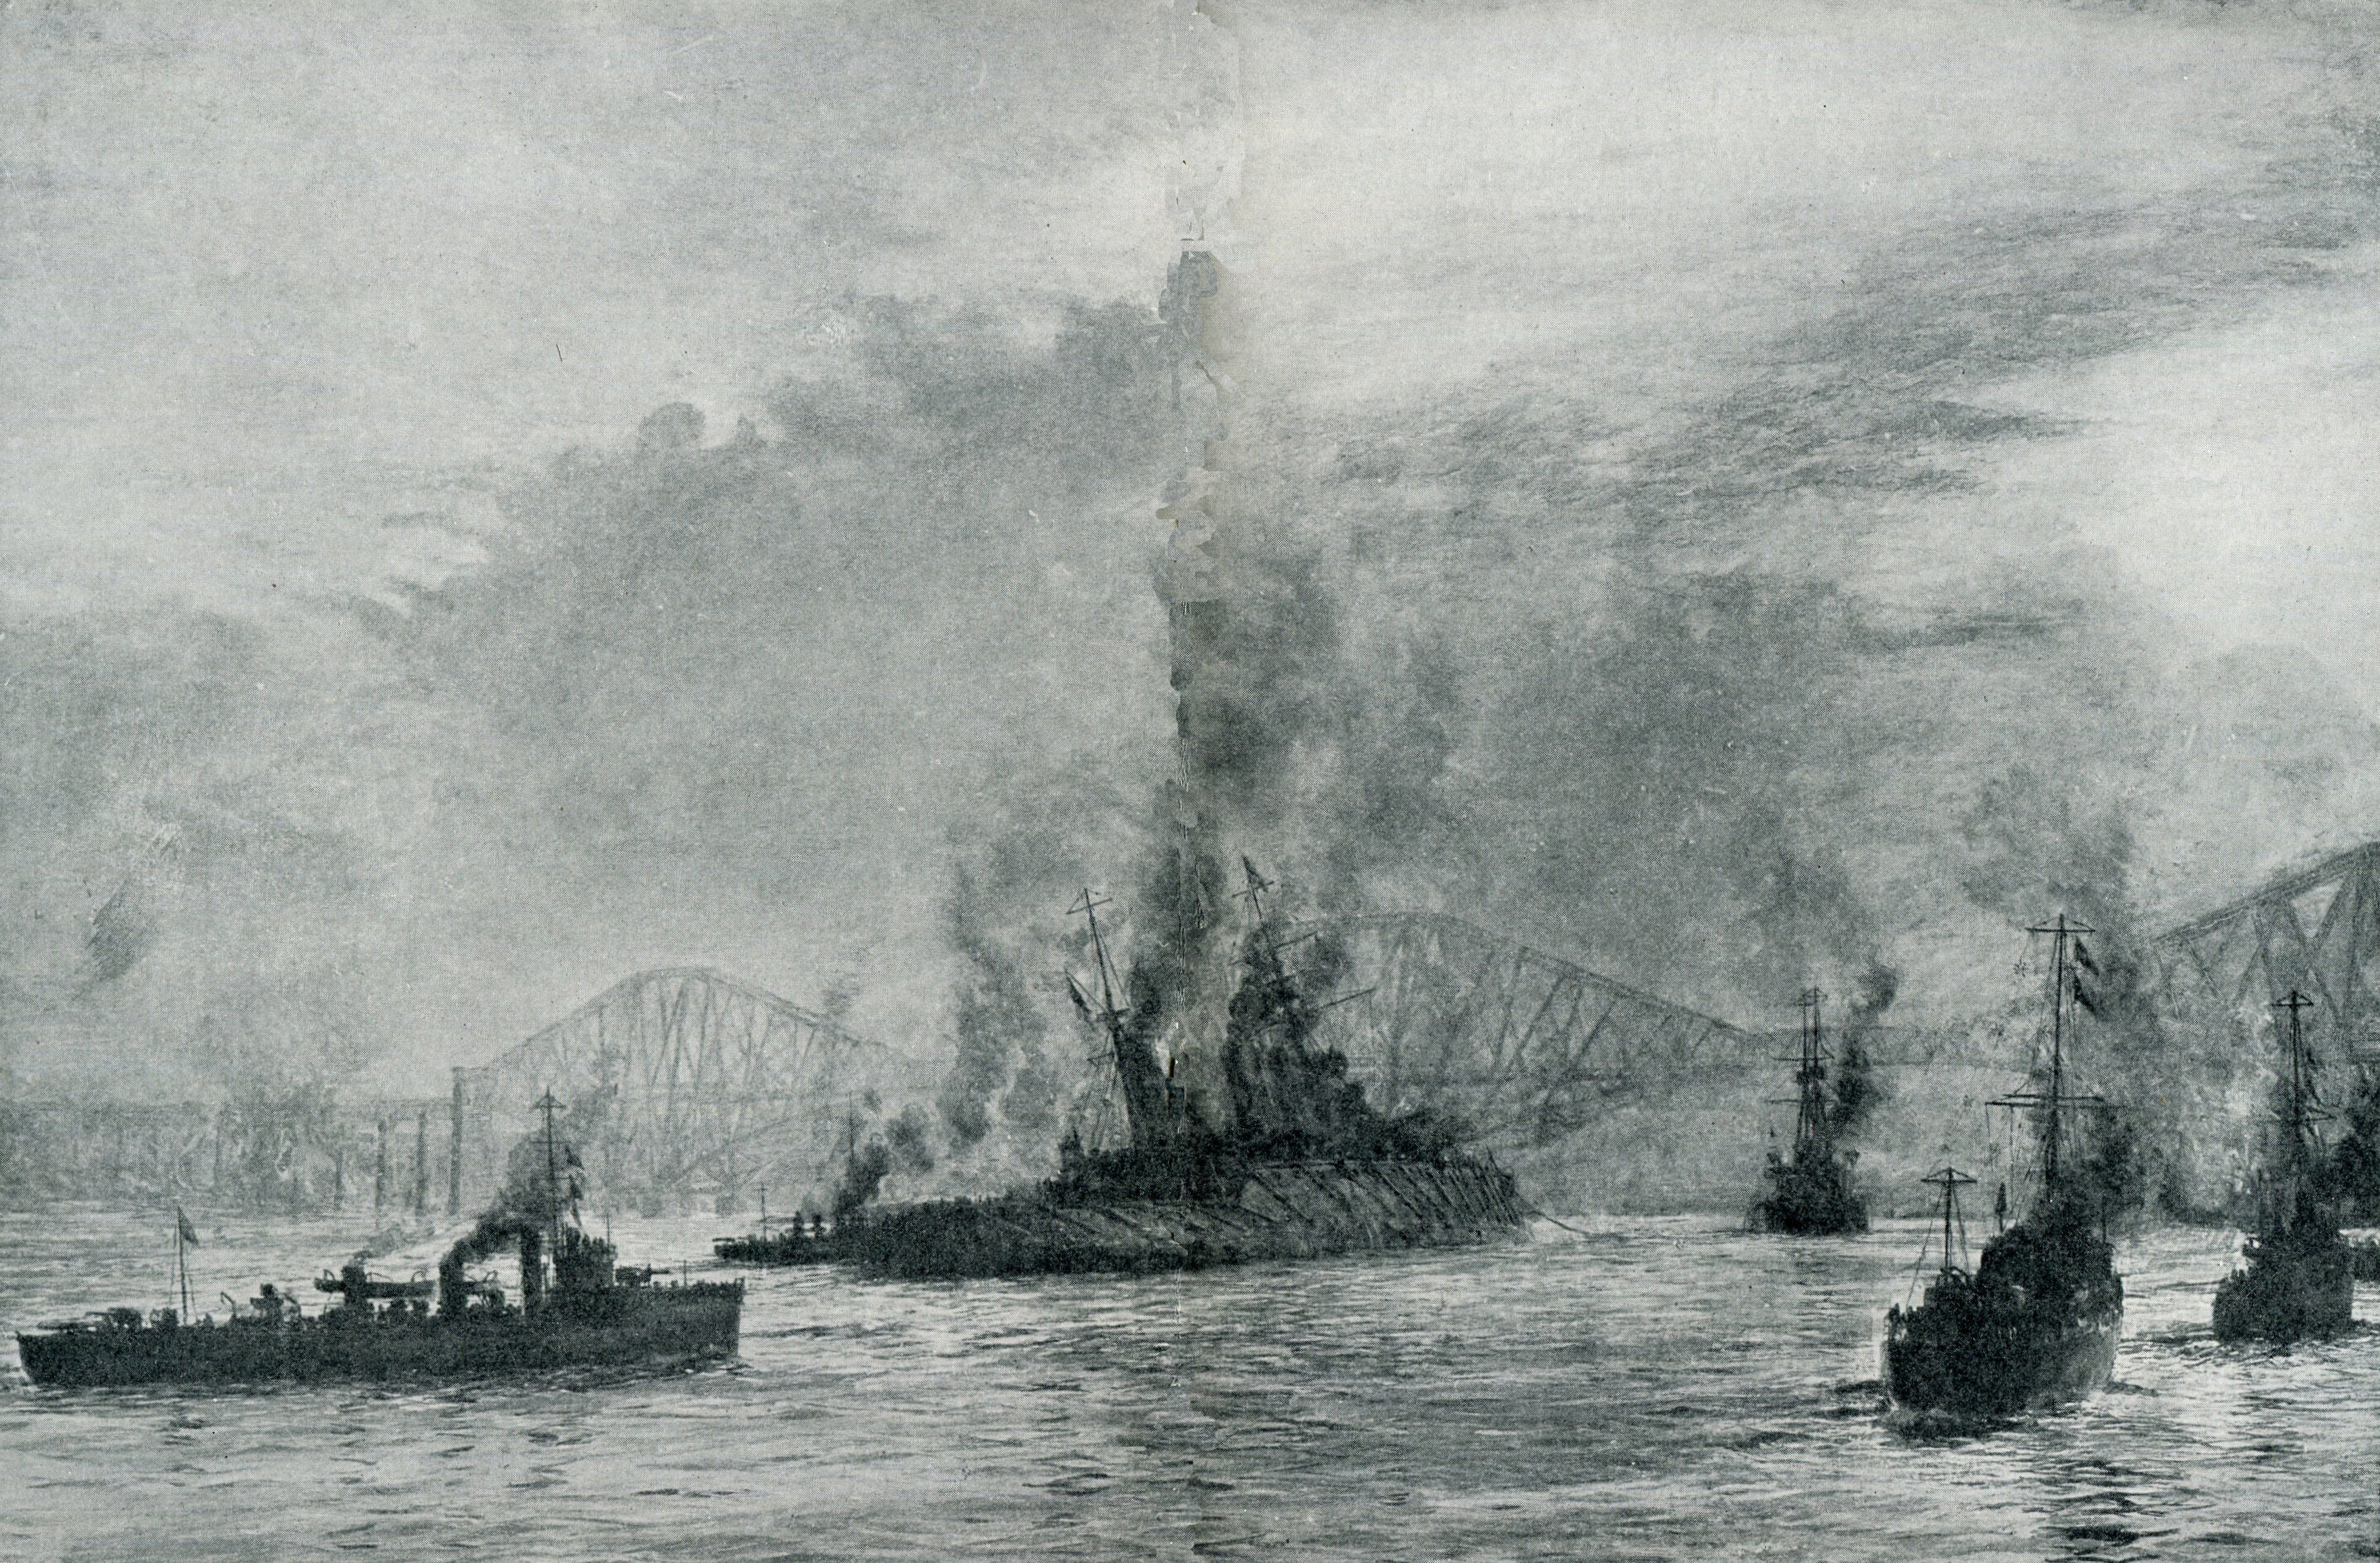 'Wounded Lion' by Lionel Wyllie. The British Batttle Cruiser HMS Lion Flagship of Admiral Beatty lies in the Firth of Forth after the Battle of Jutland on 31st May 1916